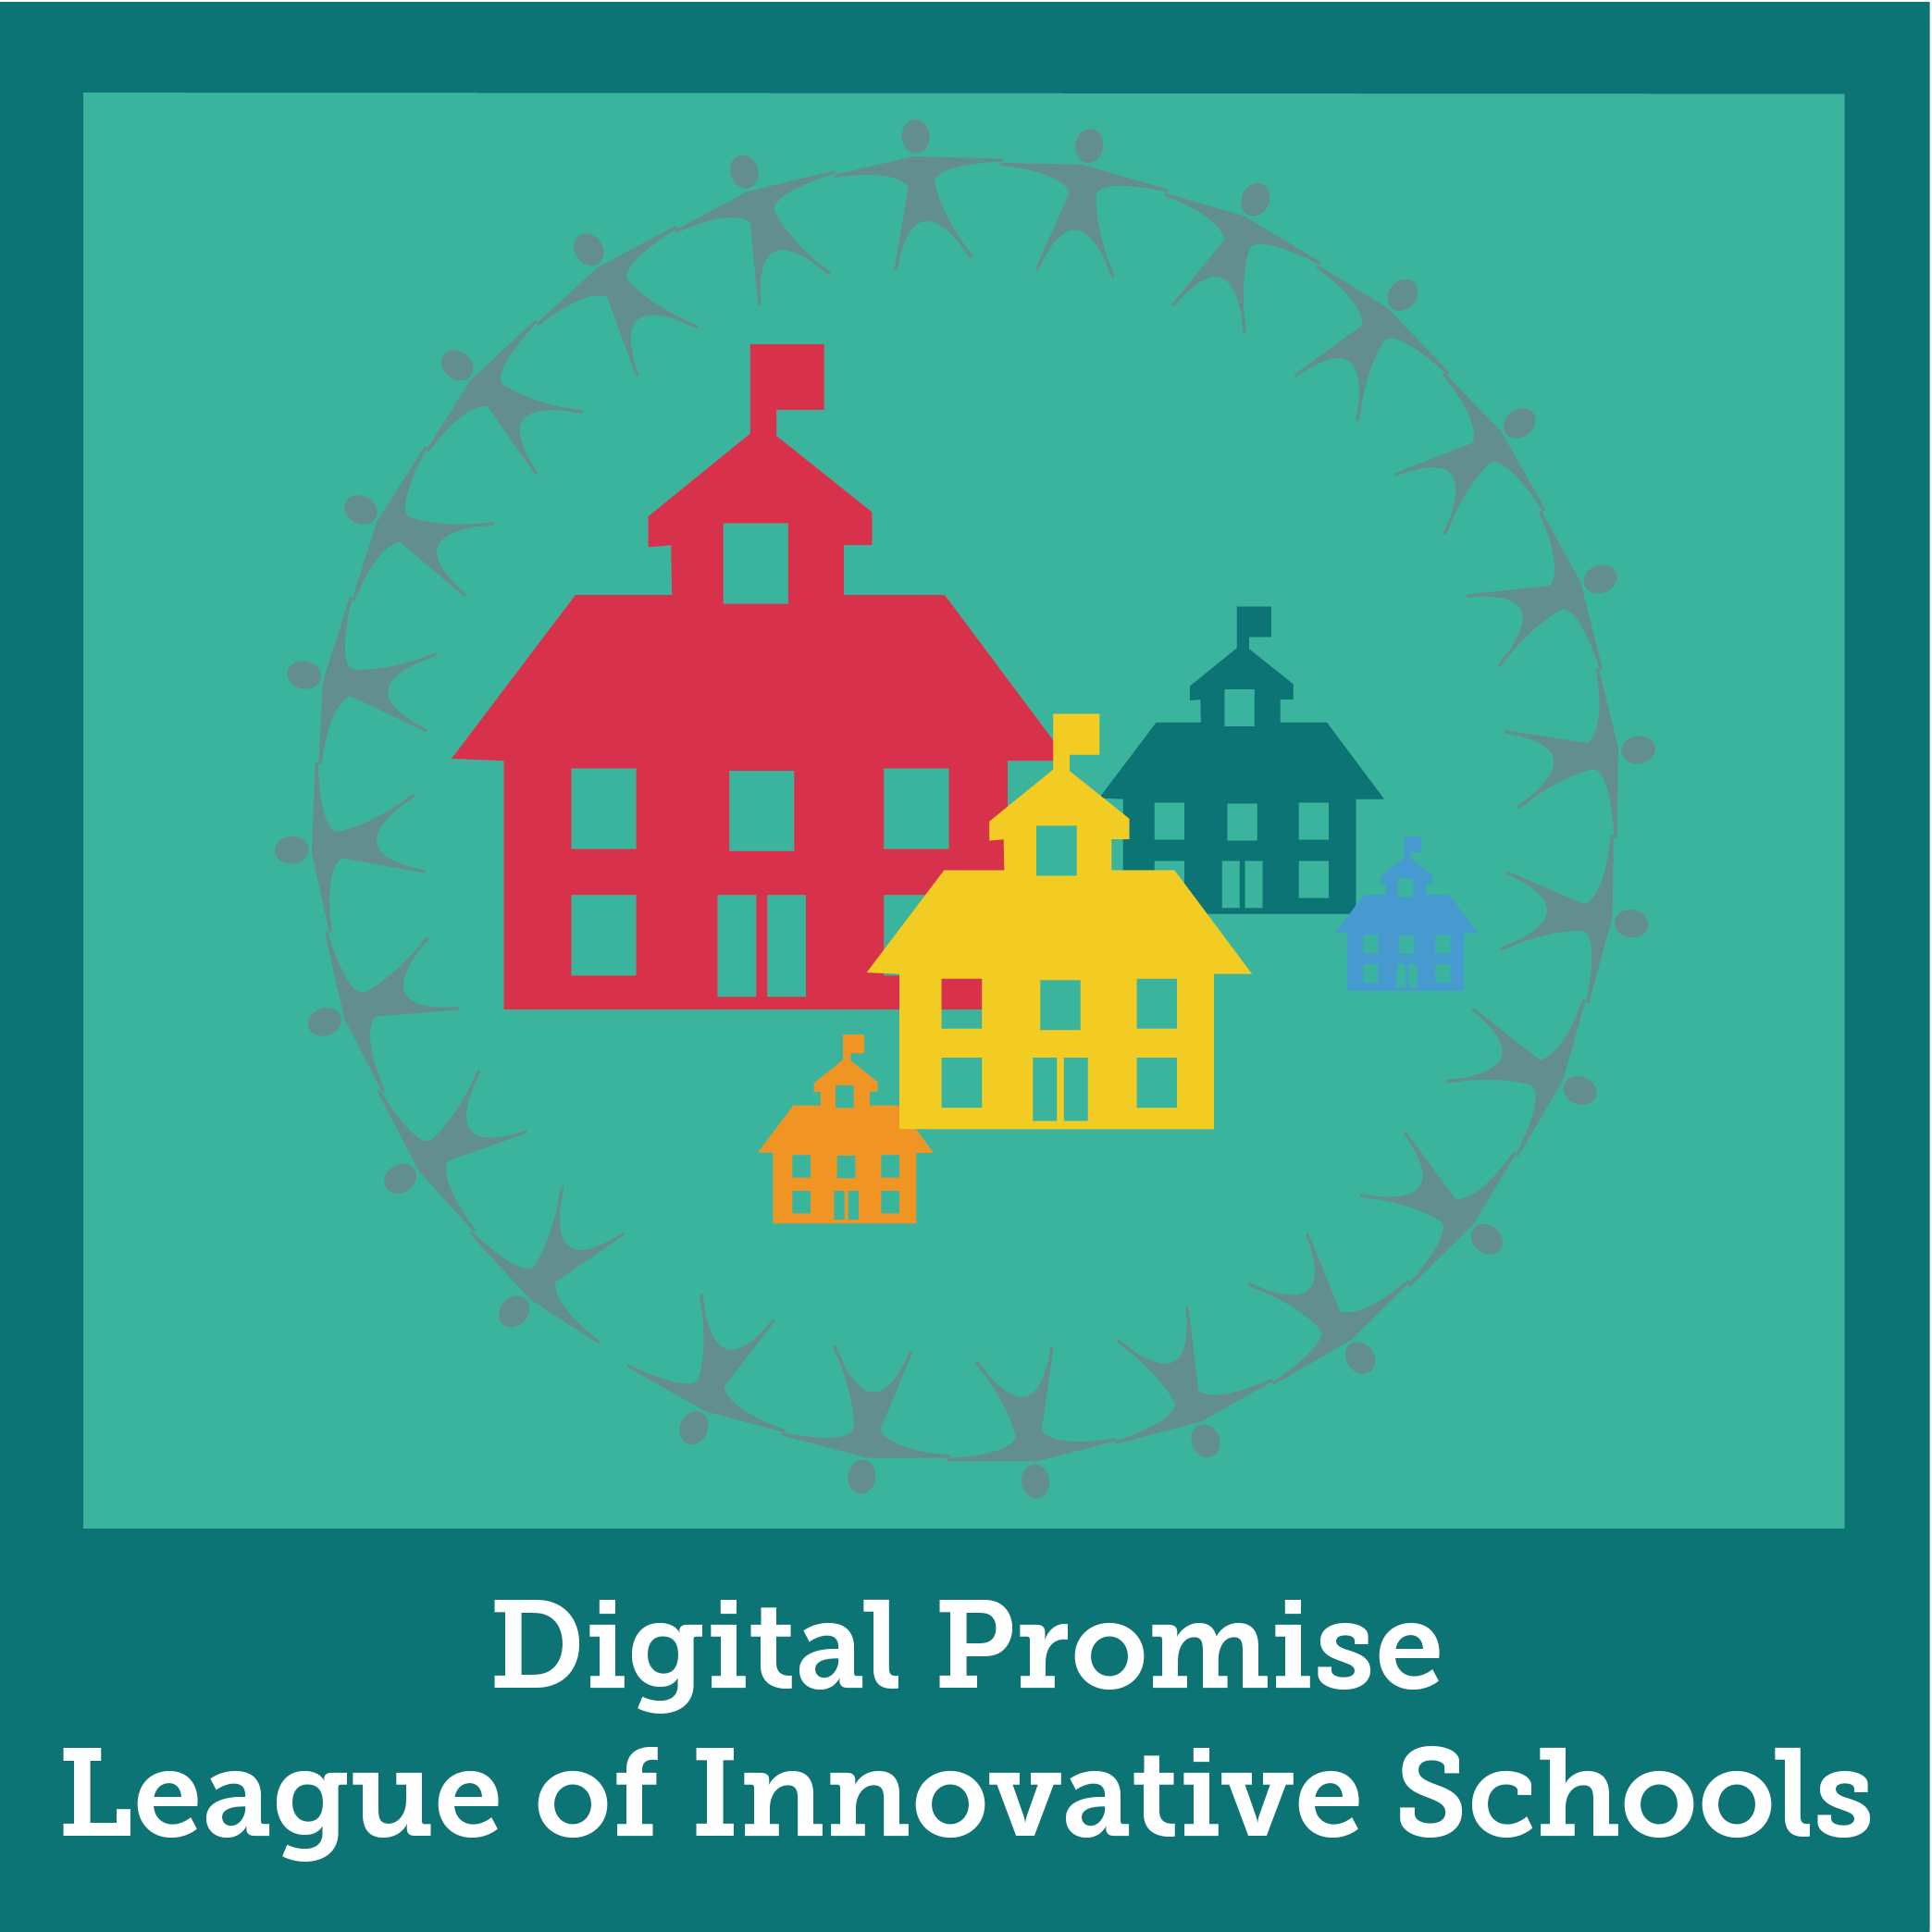 League of Innovative Schools